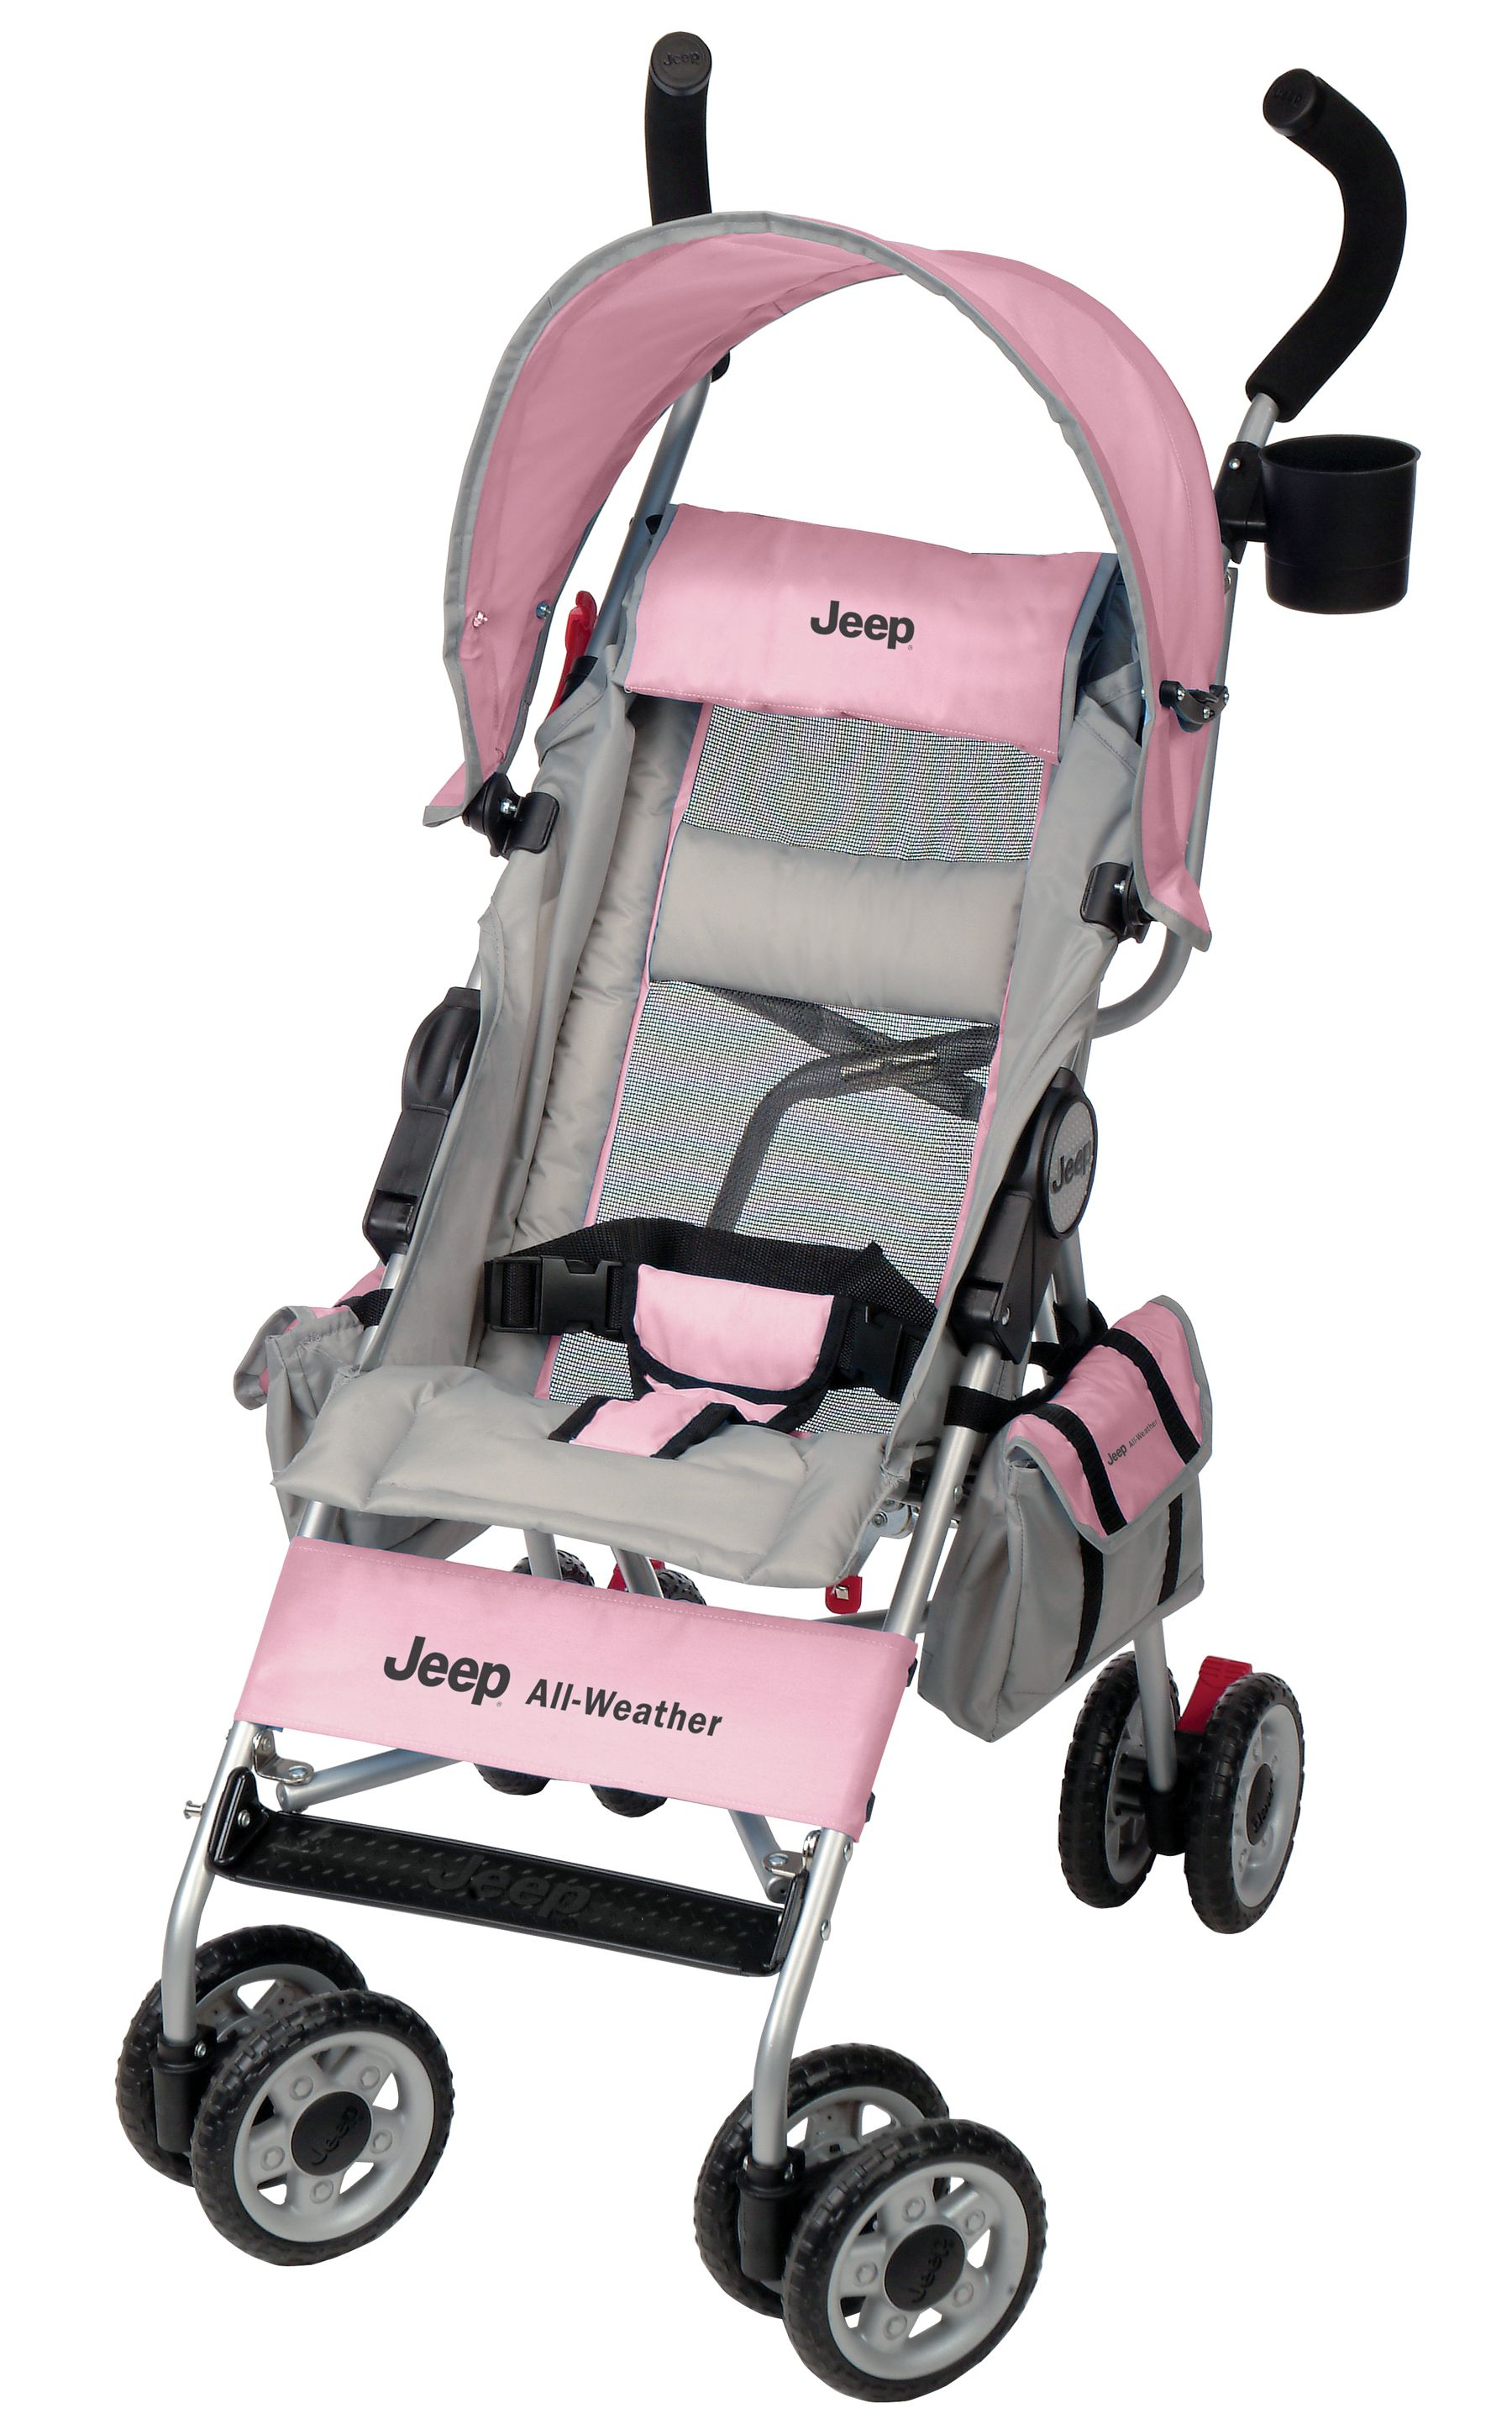 Jeep Wrangler All Weather Umbrella Stroller Pink Features Very